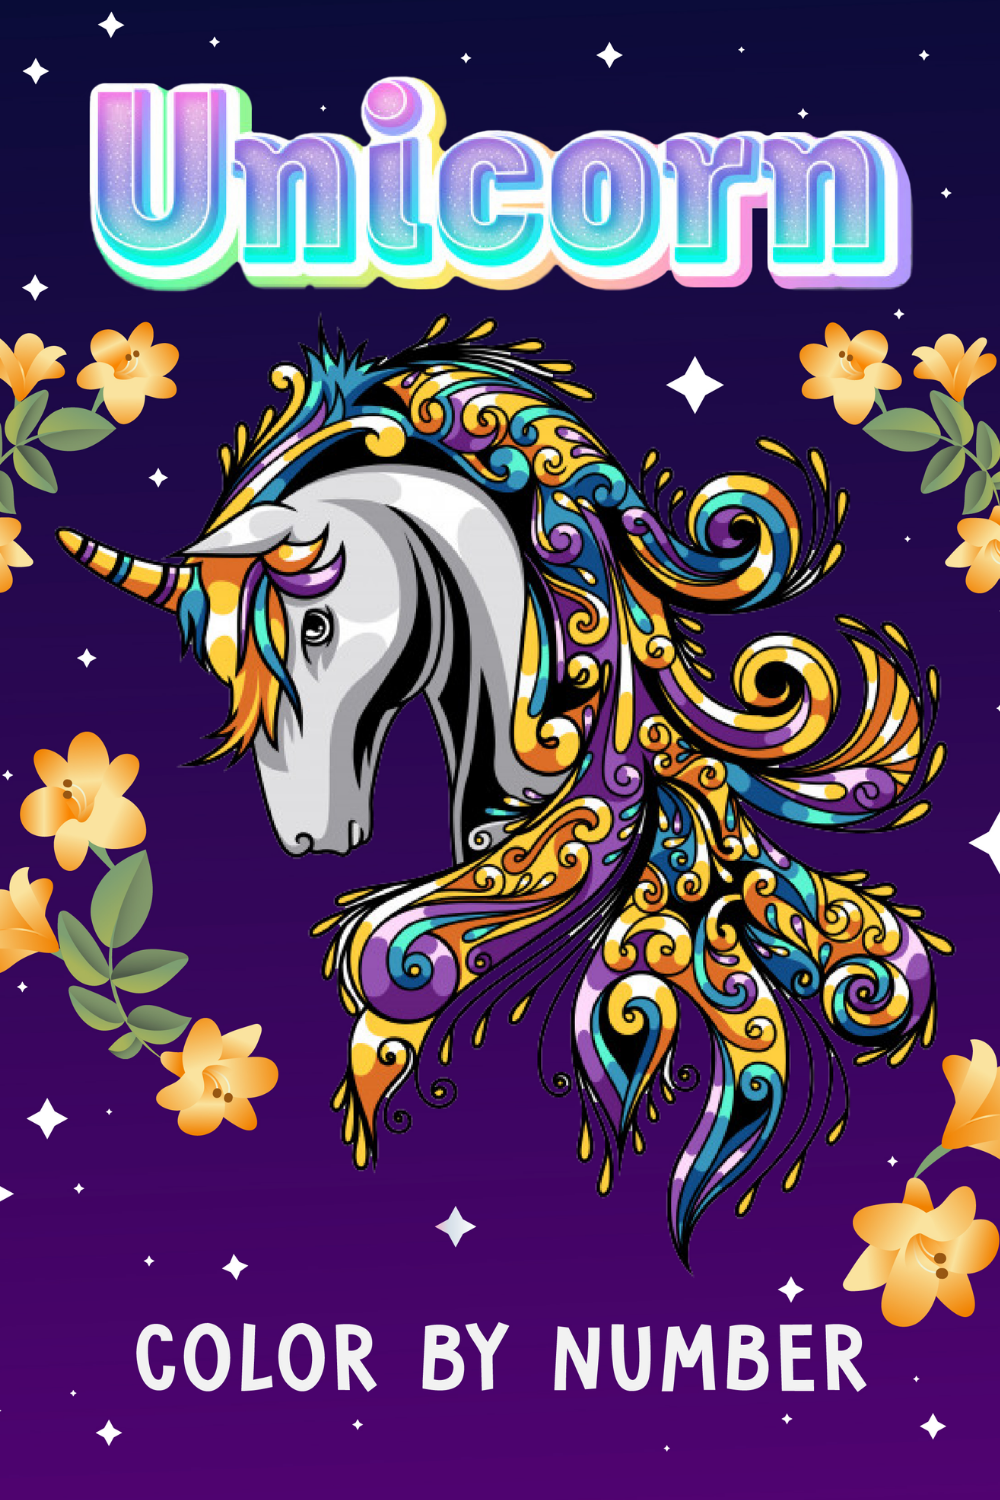 Unicorn Color By Number For Kids Ages 4 8 In 2020 Unicorn Coloring Pages Coloring Books Beautiful Unicorn